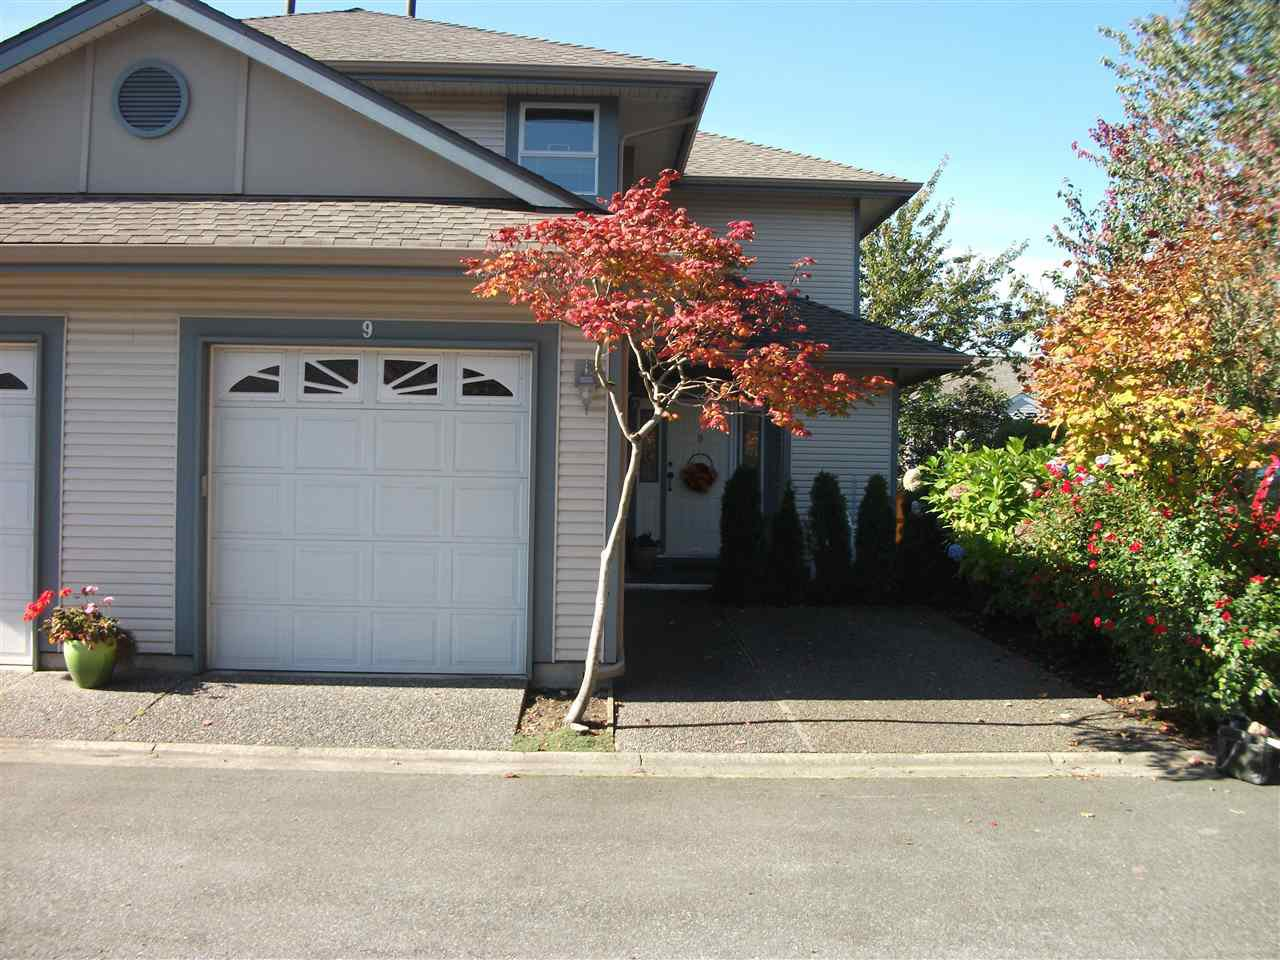 "Main Photo: 9 4725 221 Street in Langley: Murrayville Townhouse for sale in ""SUMMERHILL GATE"" : MLS®# R2312201"